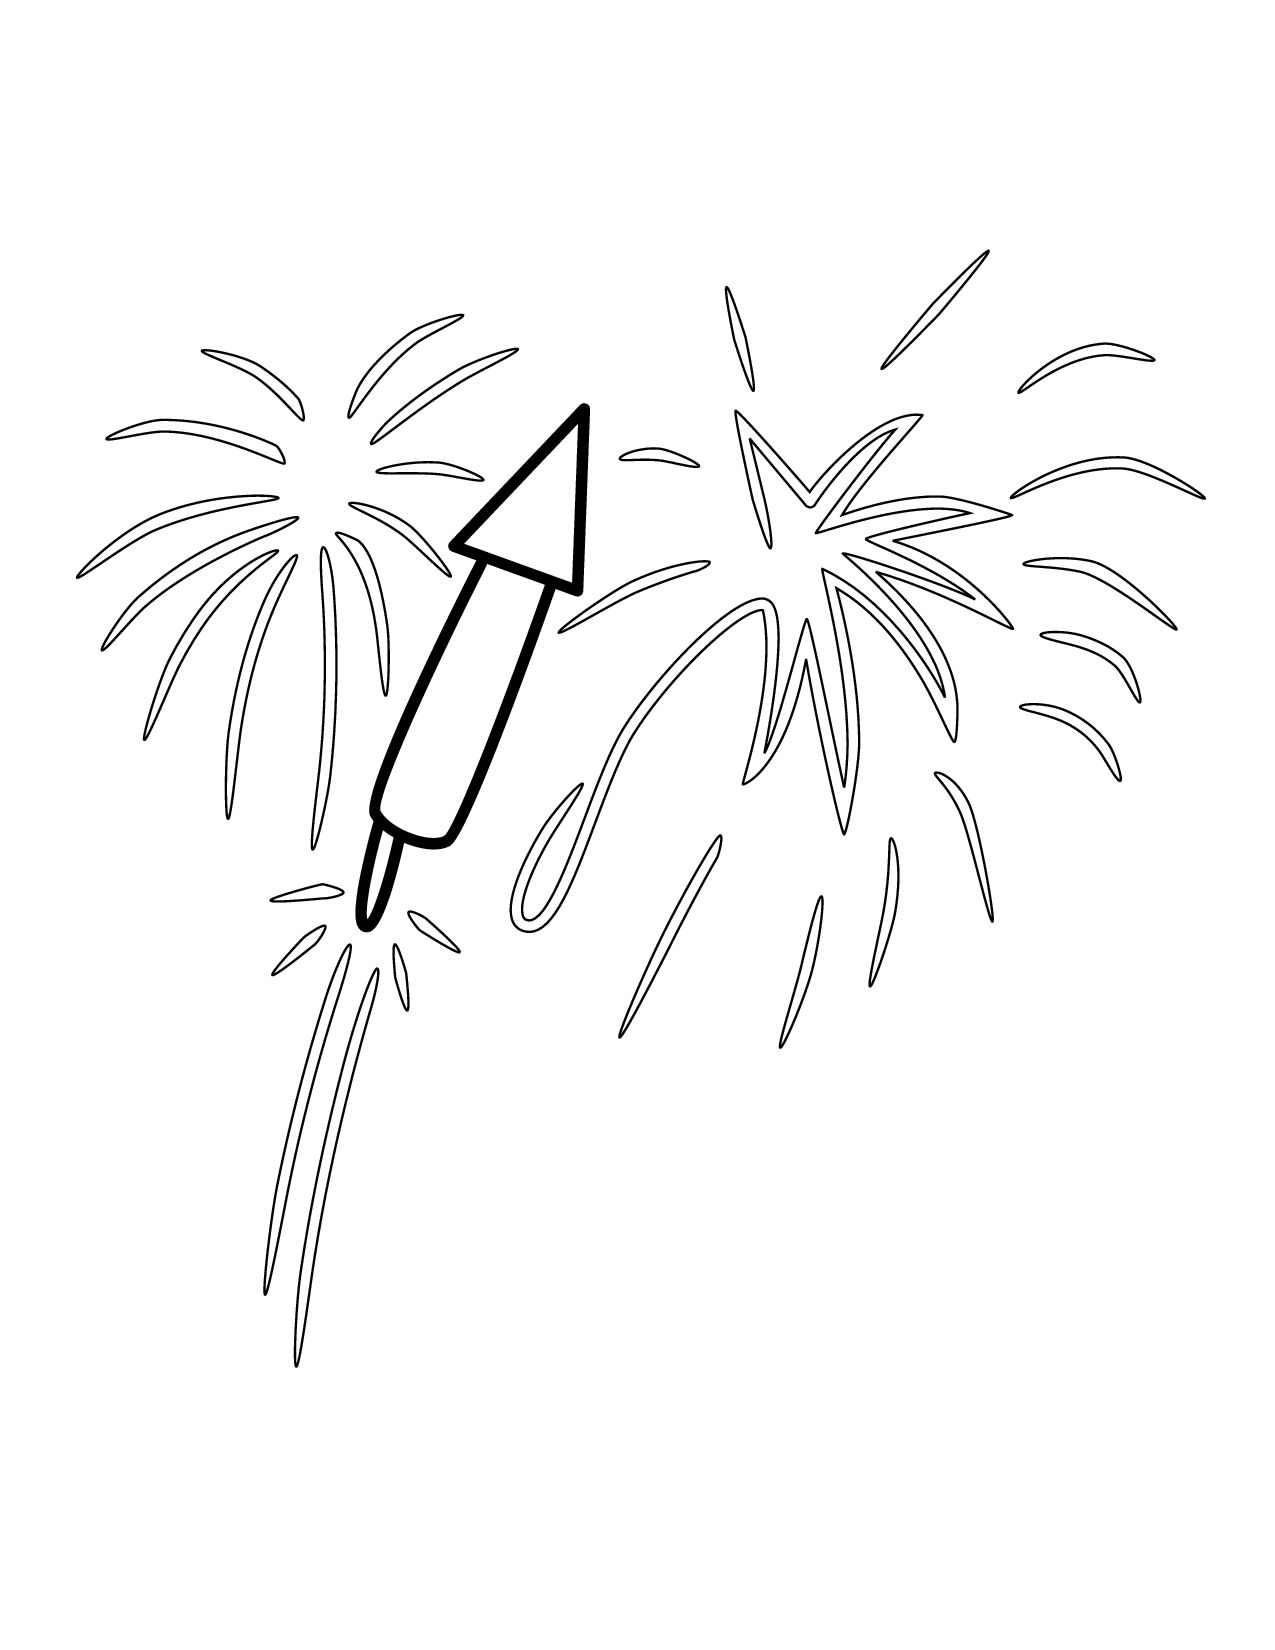 in addition  together with Diwali Fireworks Coloring Pages 212x300 further  together with  moreover  also  as well  furthermore  together with  as well . on printable coloring pages fireworks 2014